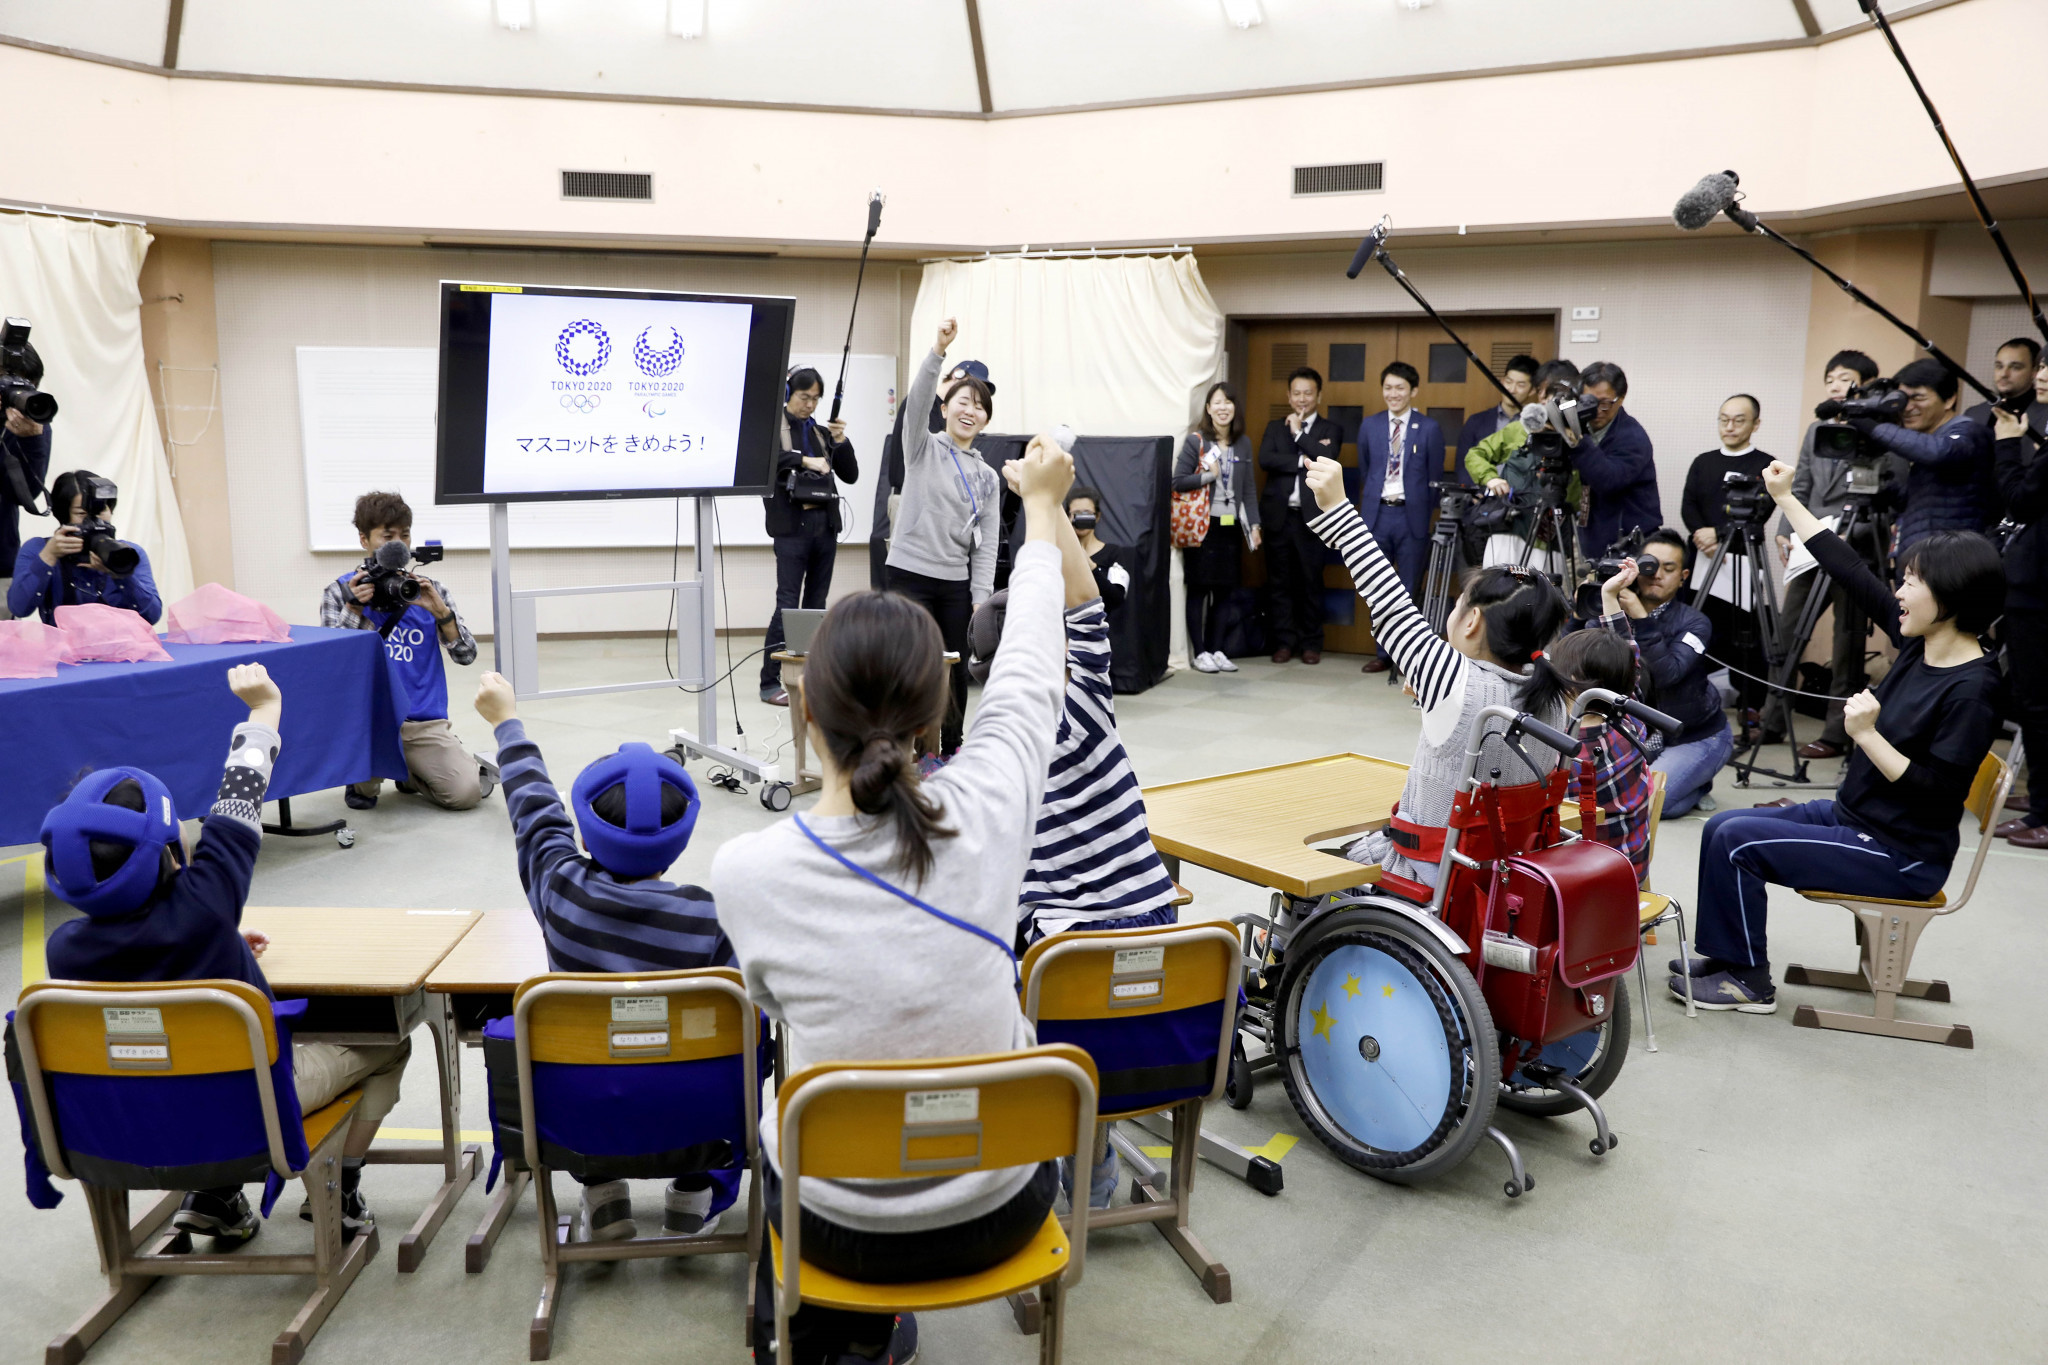 The winner of the school vote will be announced on February 28 ©Tokyo 2020